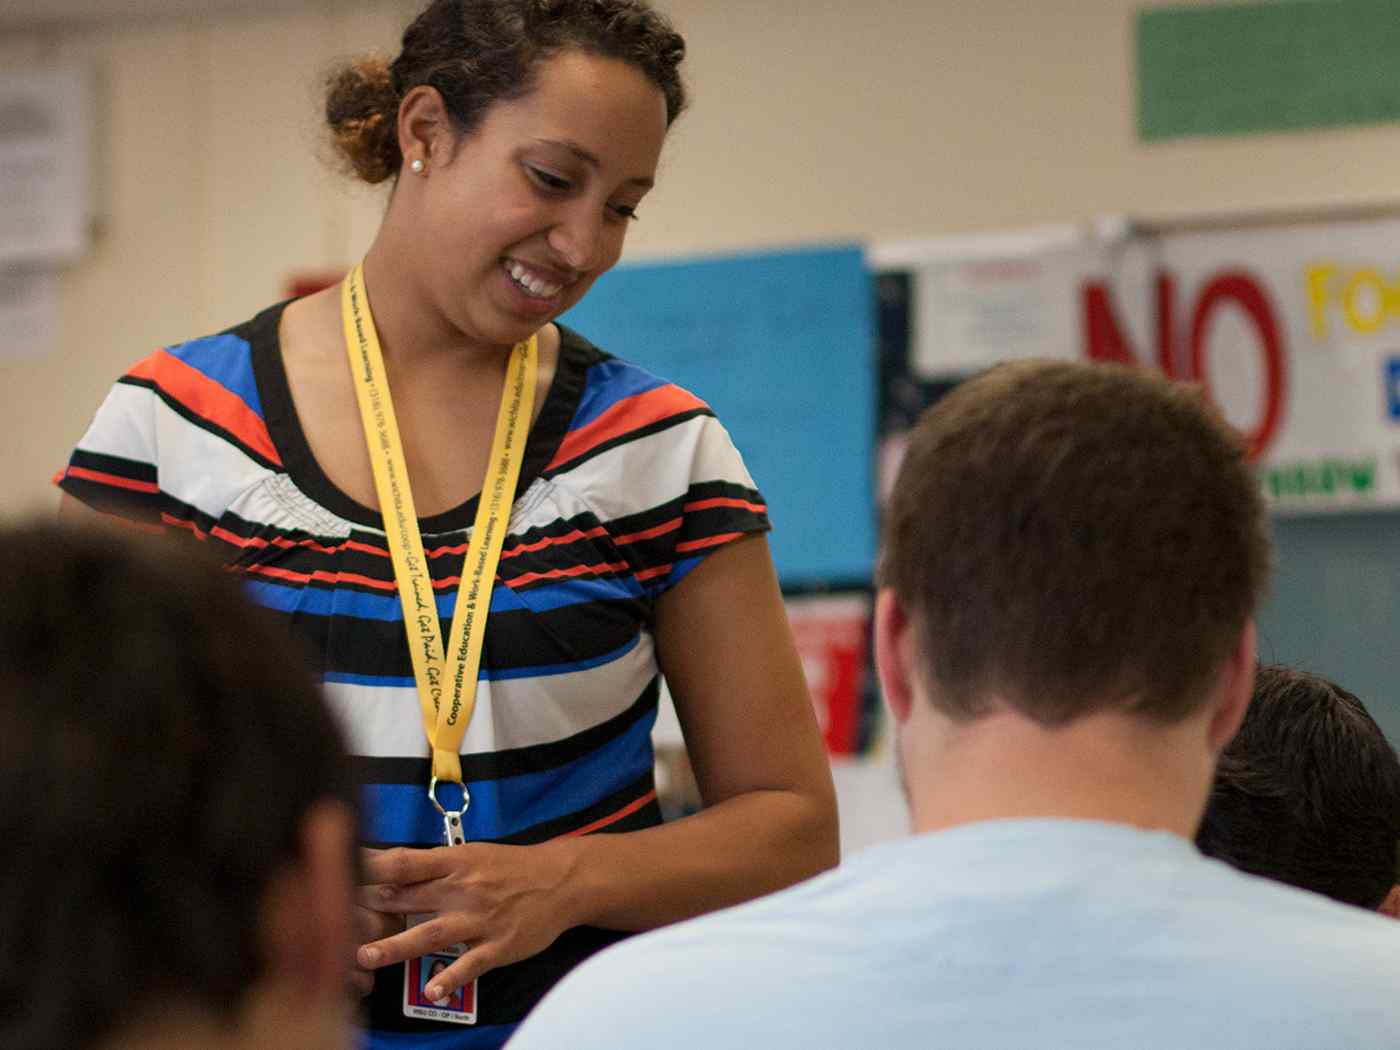 Female student teacher smiling in classroom.